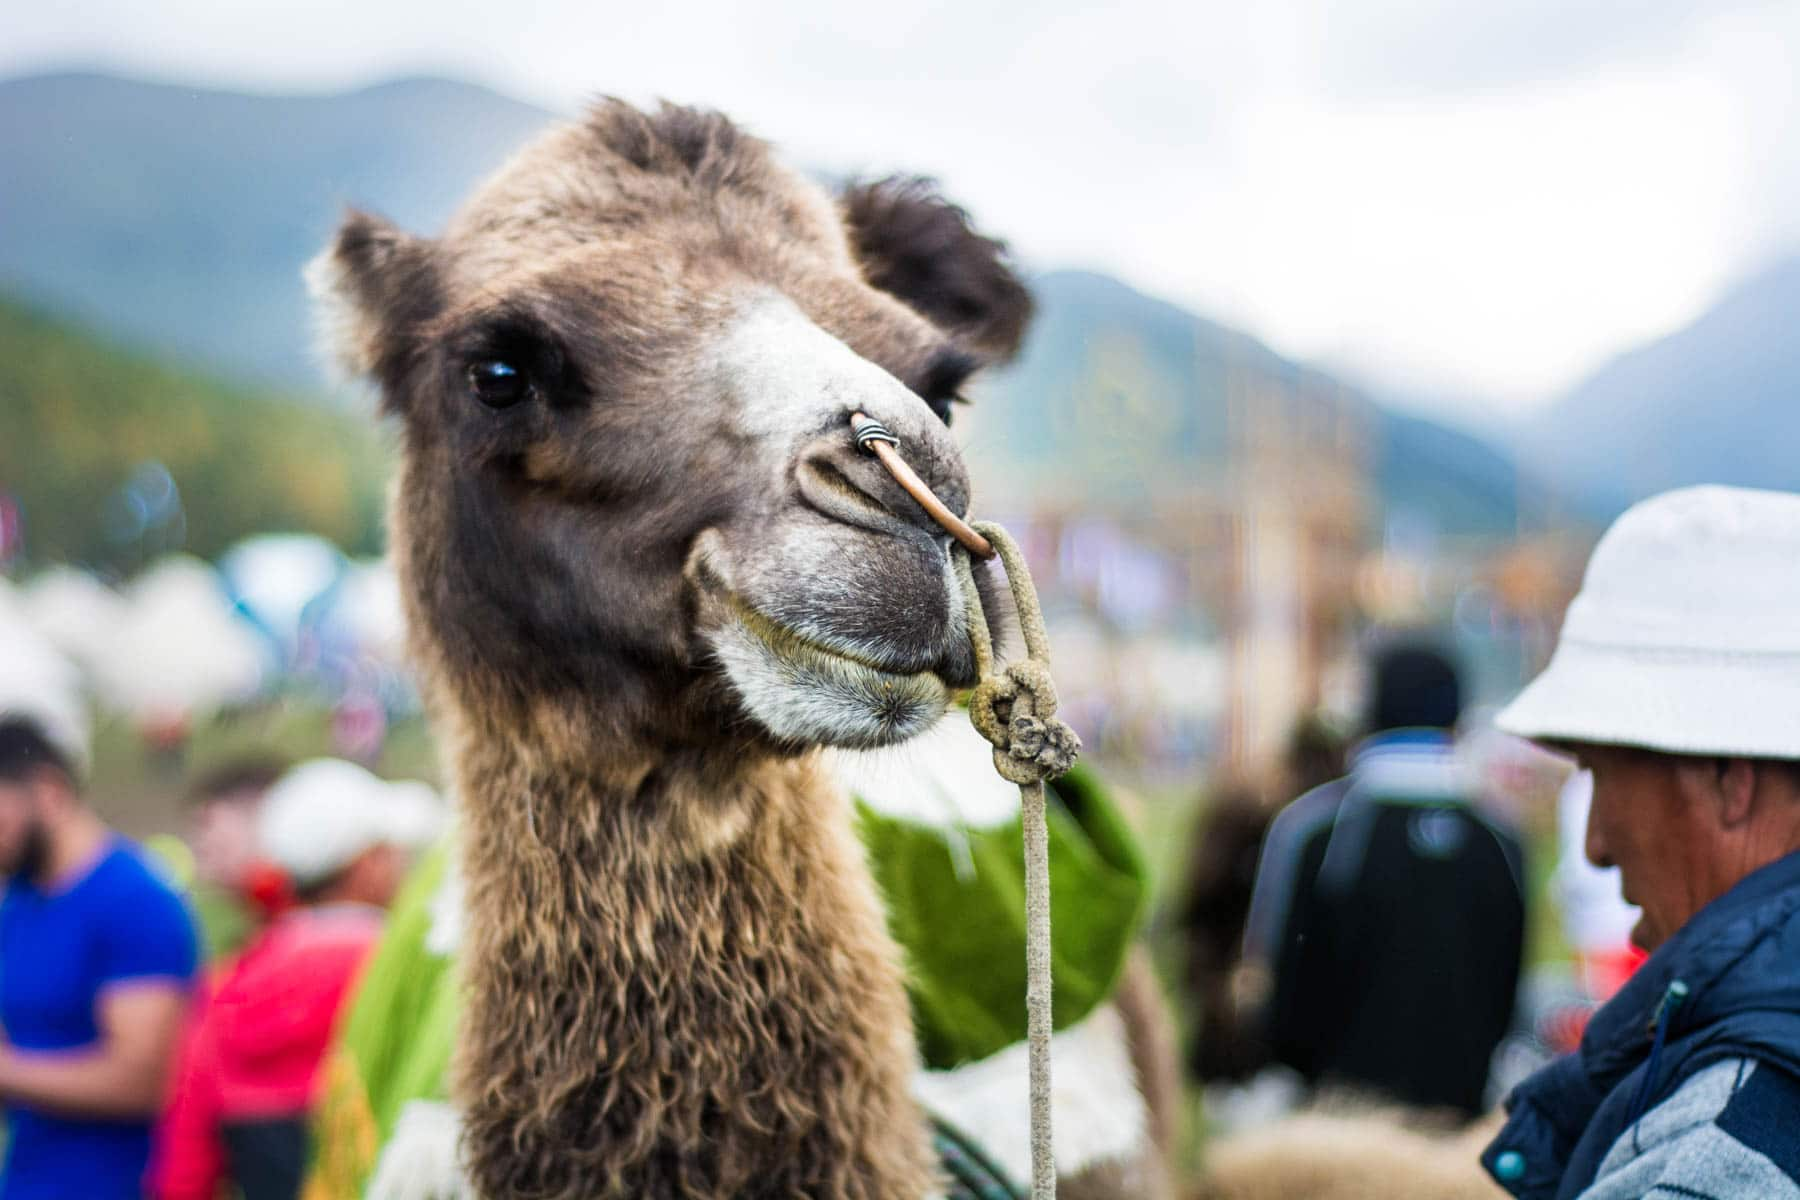 Camel at the 2016 World Nomad Games - Are the 2018 World Nomad Games worth the trip? - Lost With Purpose